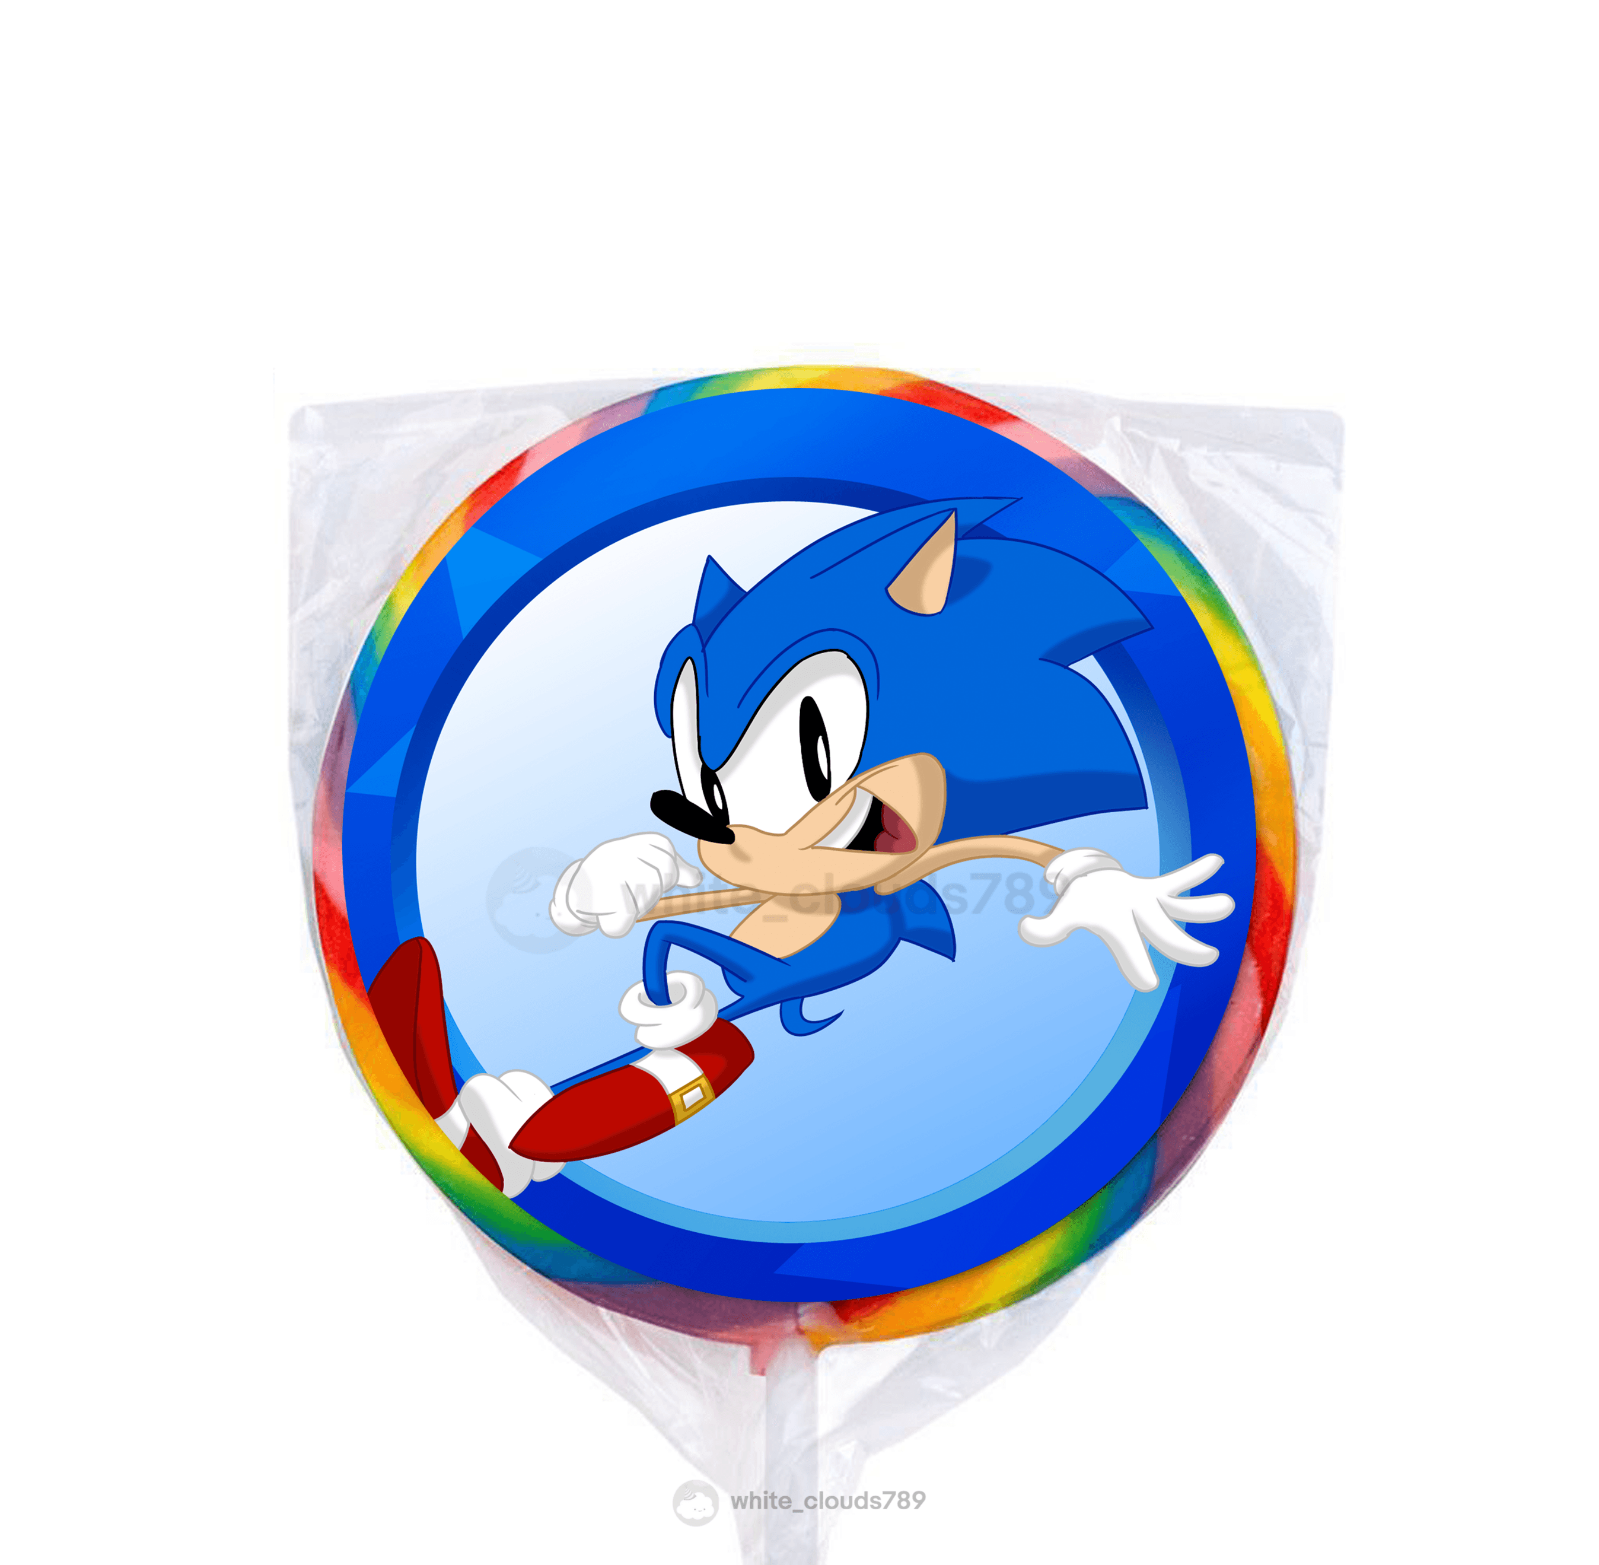 10 Sonic The Hedgehog Video Game Bubbles Birthday Party Favor Bag Sticker Goody For Sale Online Ebay